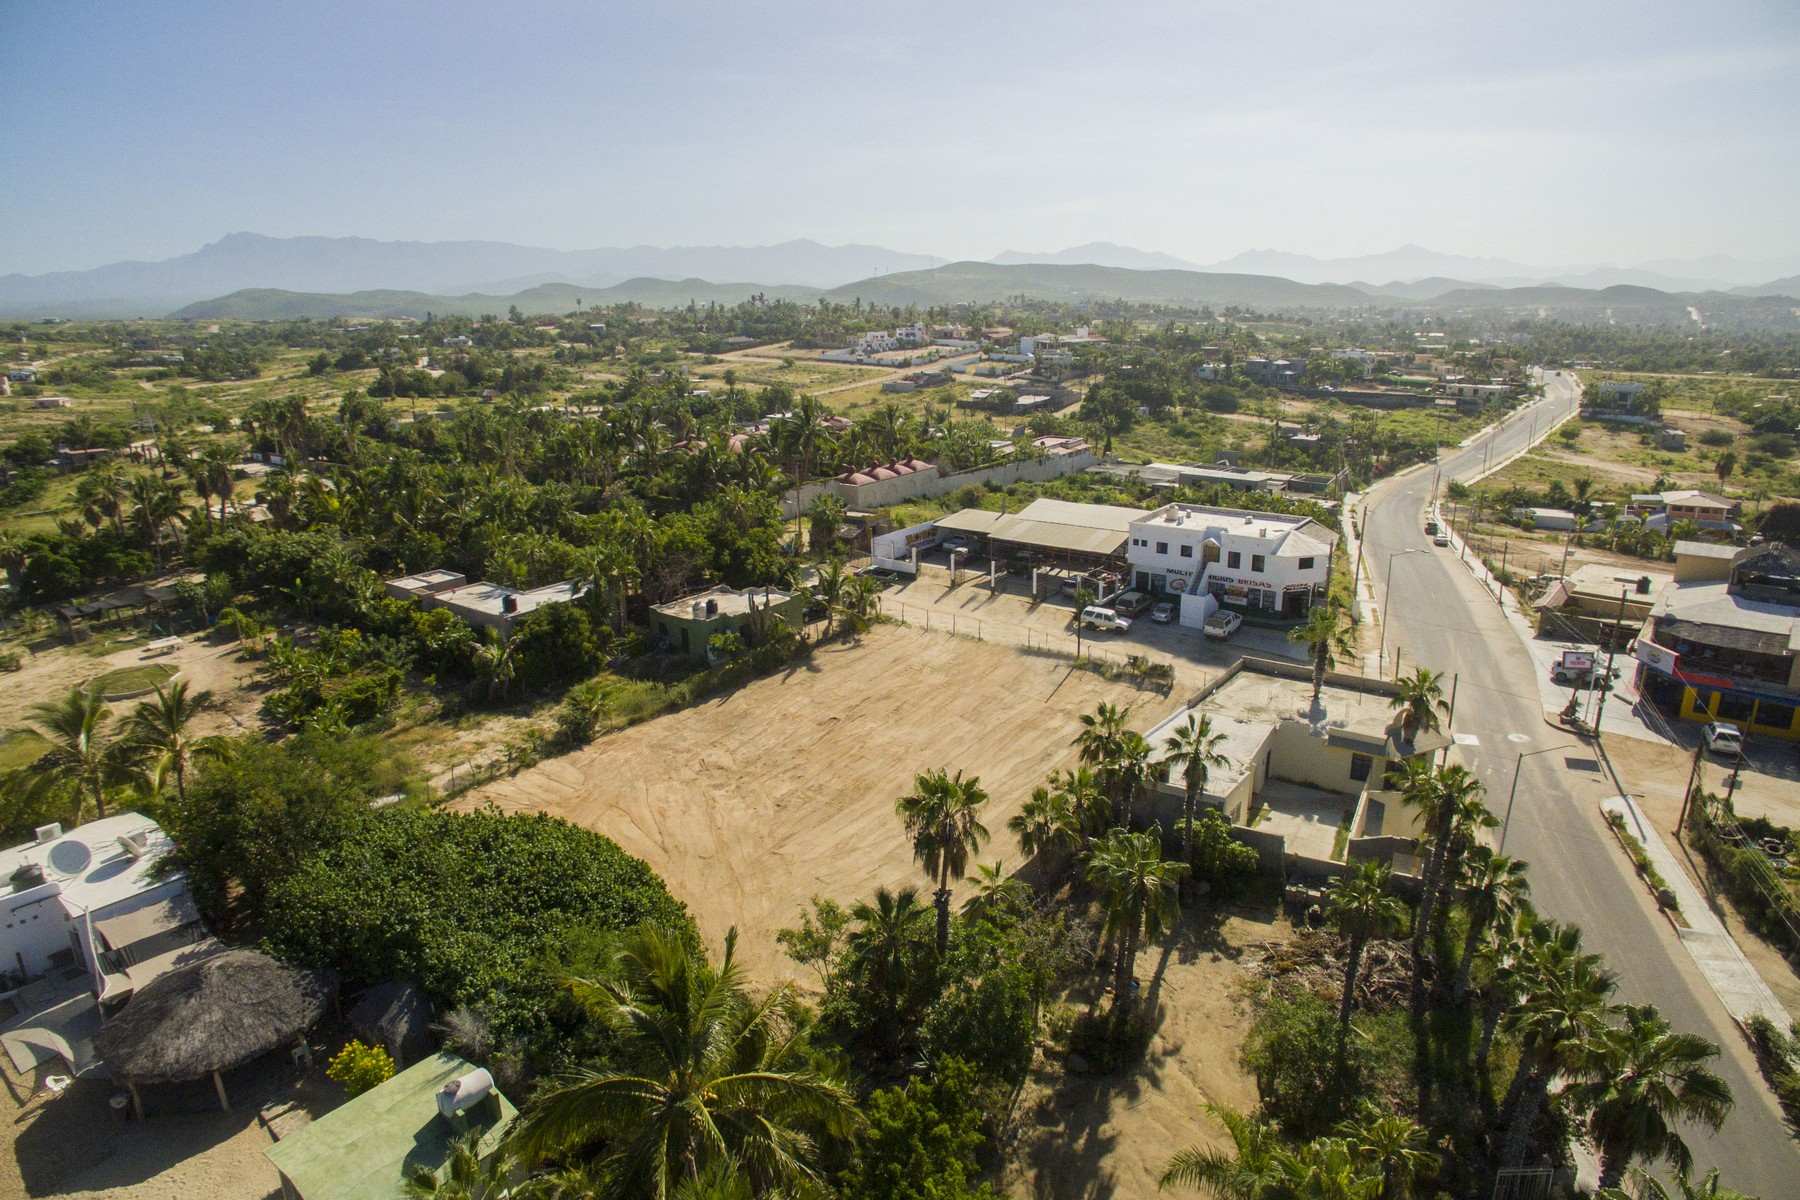 Land for Sale at Lote Mercado Del Sol Centro, Todos Santos Todos Santos, 23300 Mexico